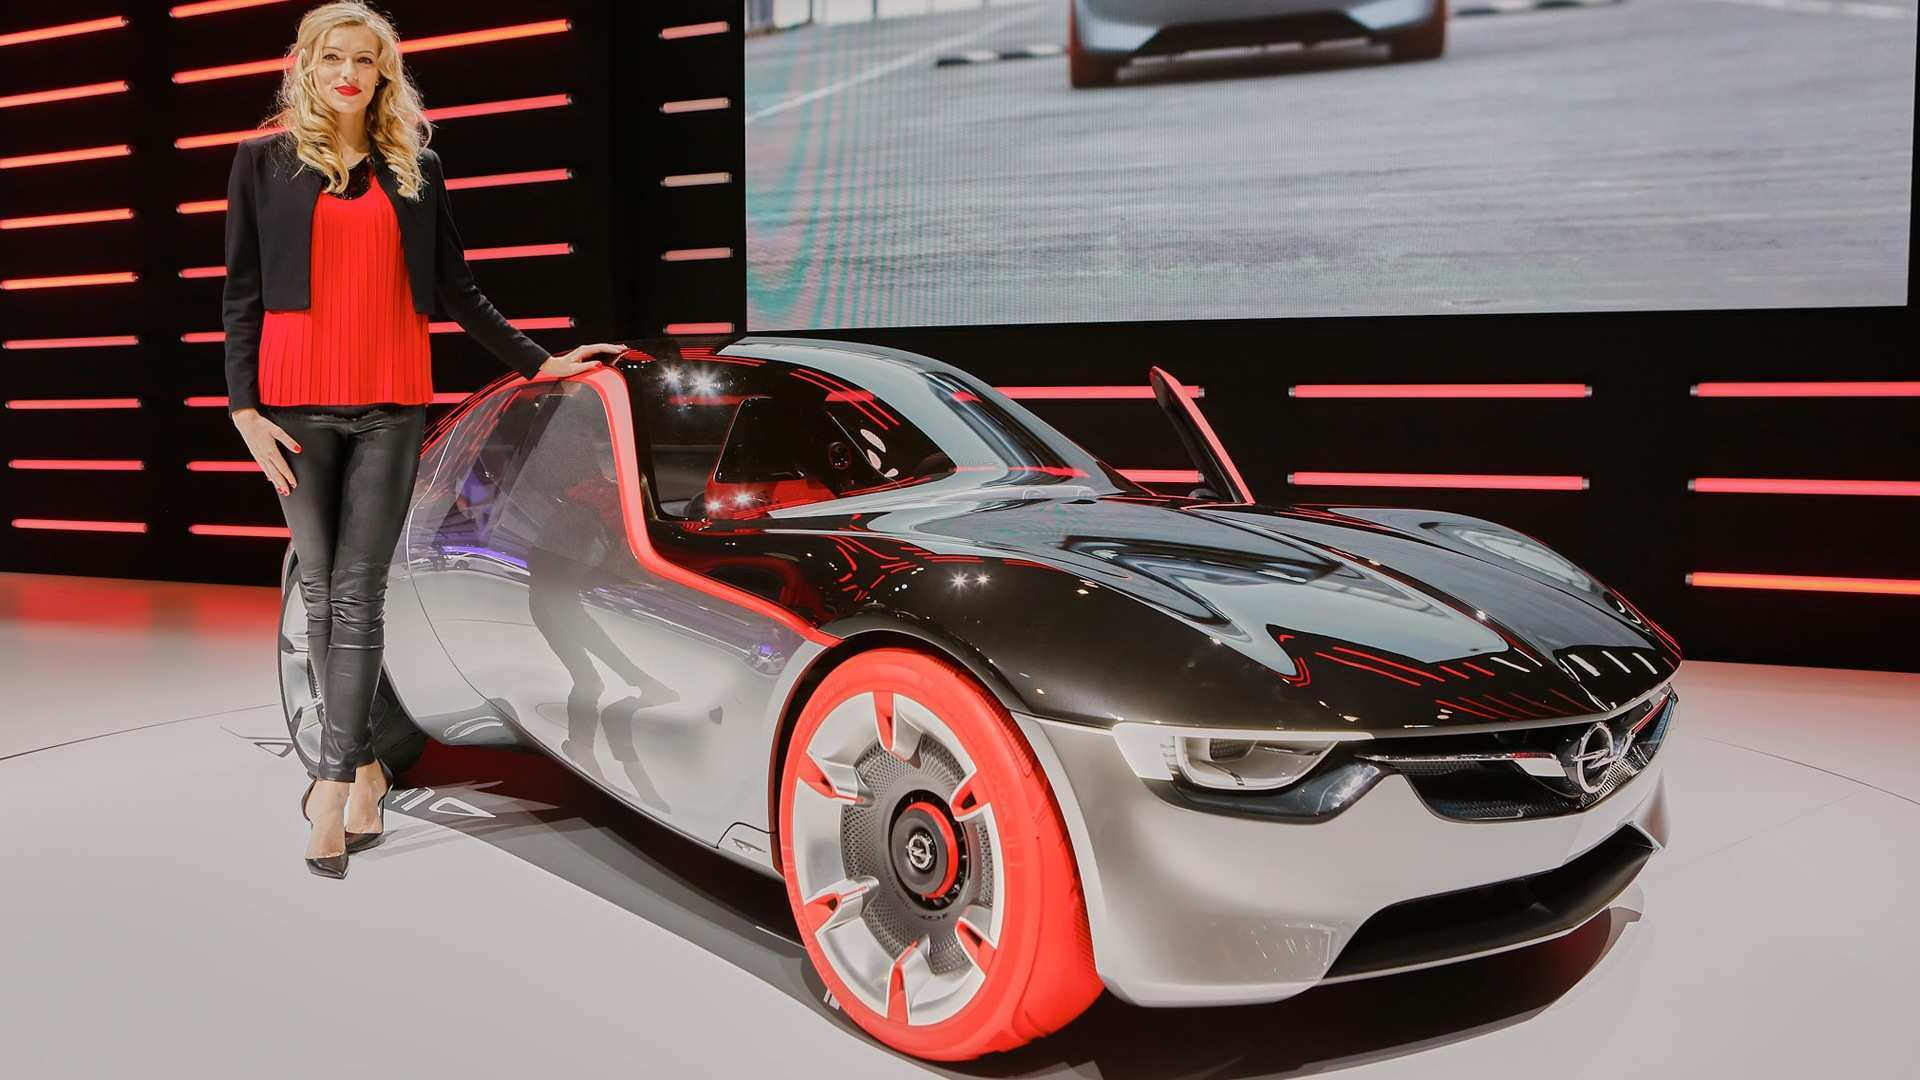 56 Gallery of 2020 Opel Gt Images for 2020 Opel Gt